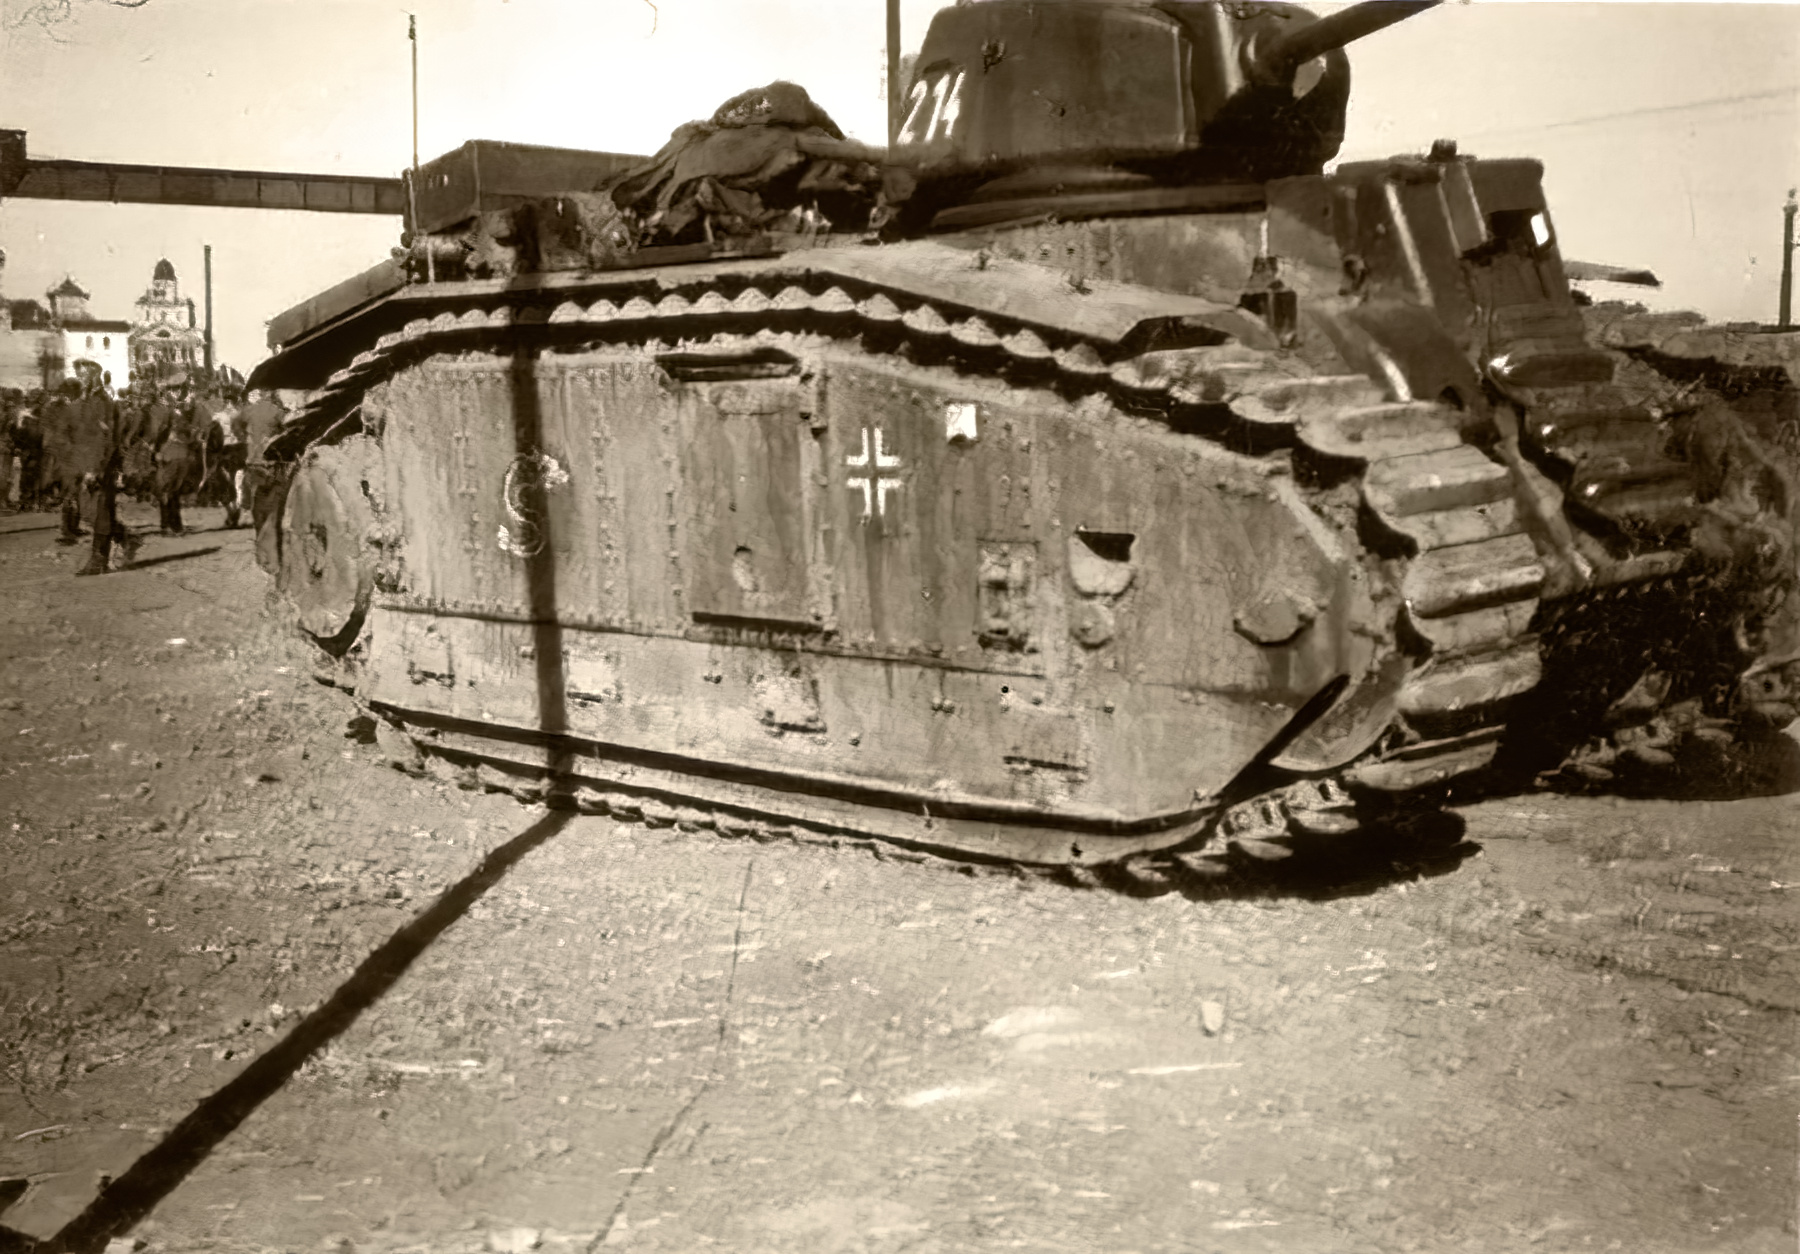 Wehrmacht captured Renault Char B1 being used by German forces France 1940 ebay 01